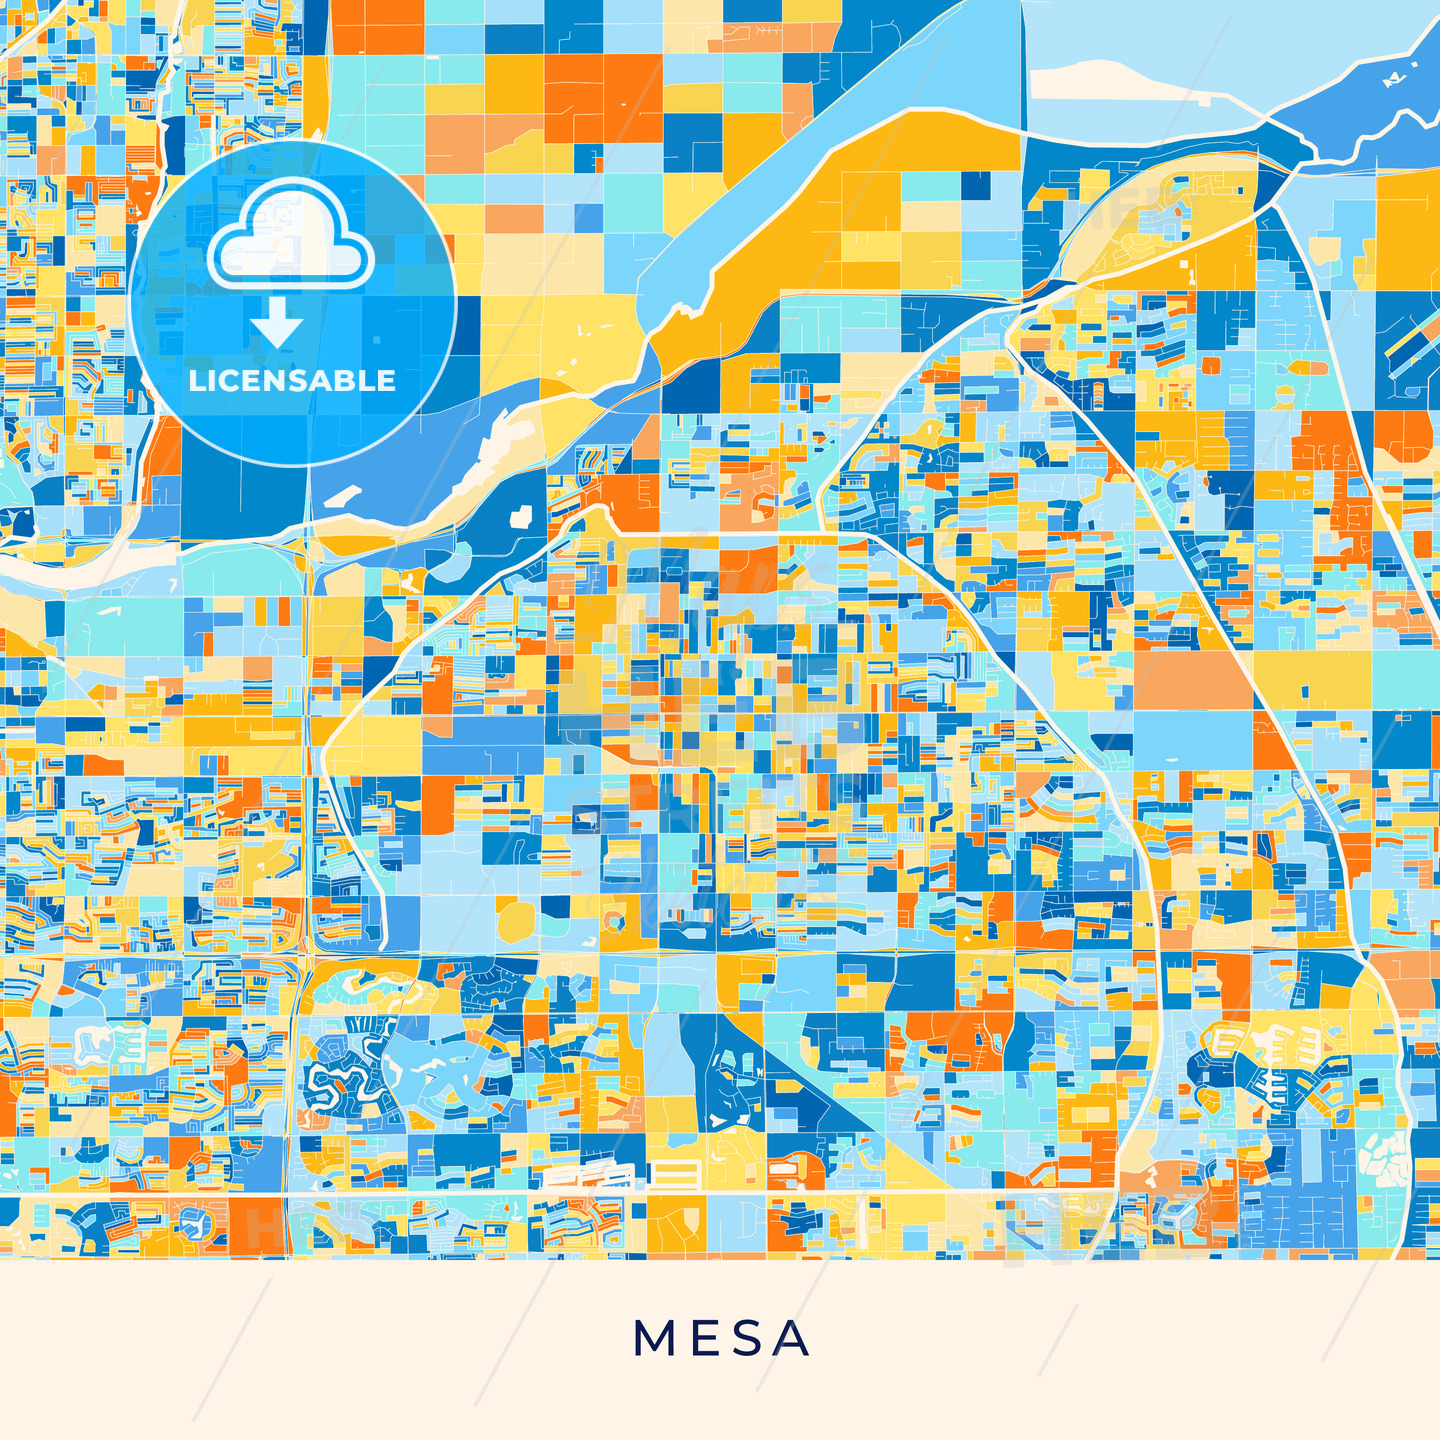 Mesa colorful map poster template